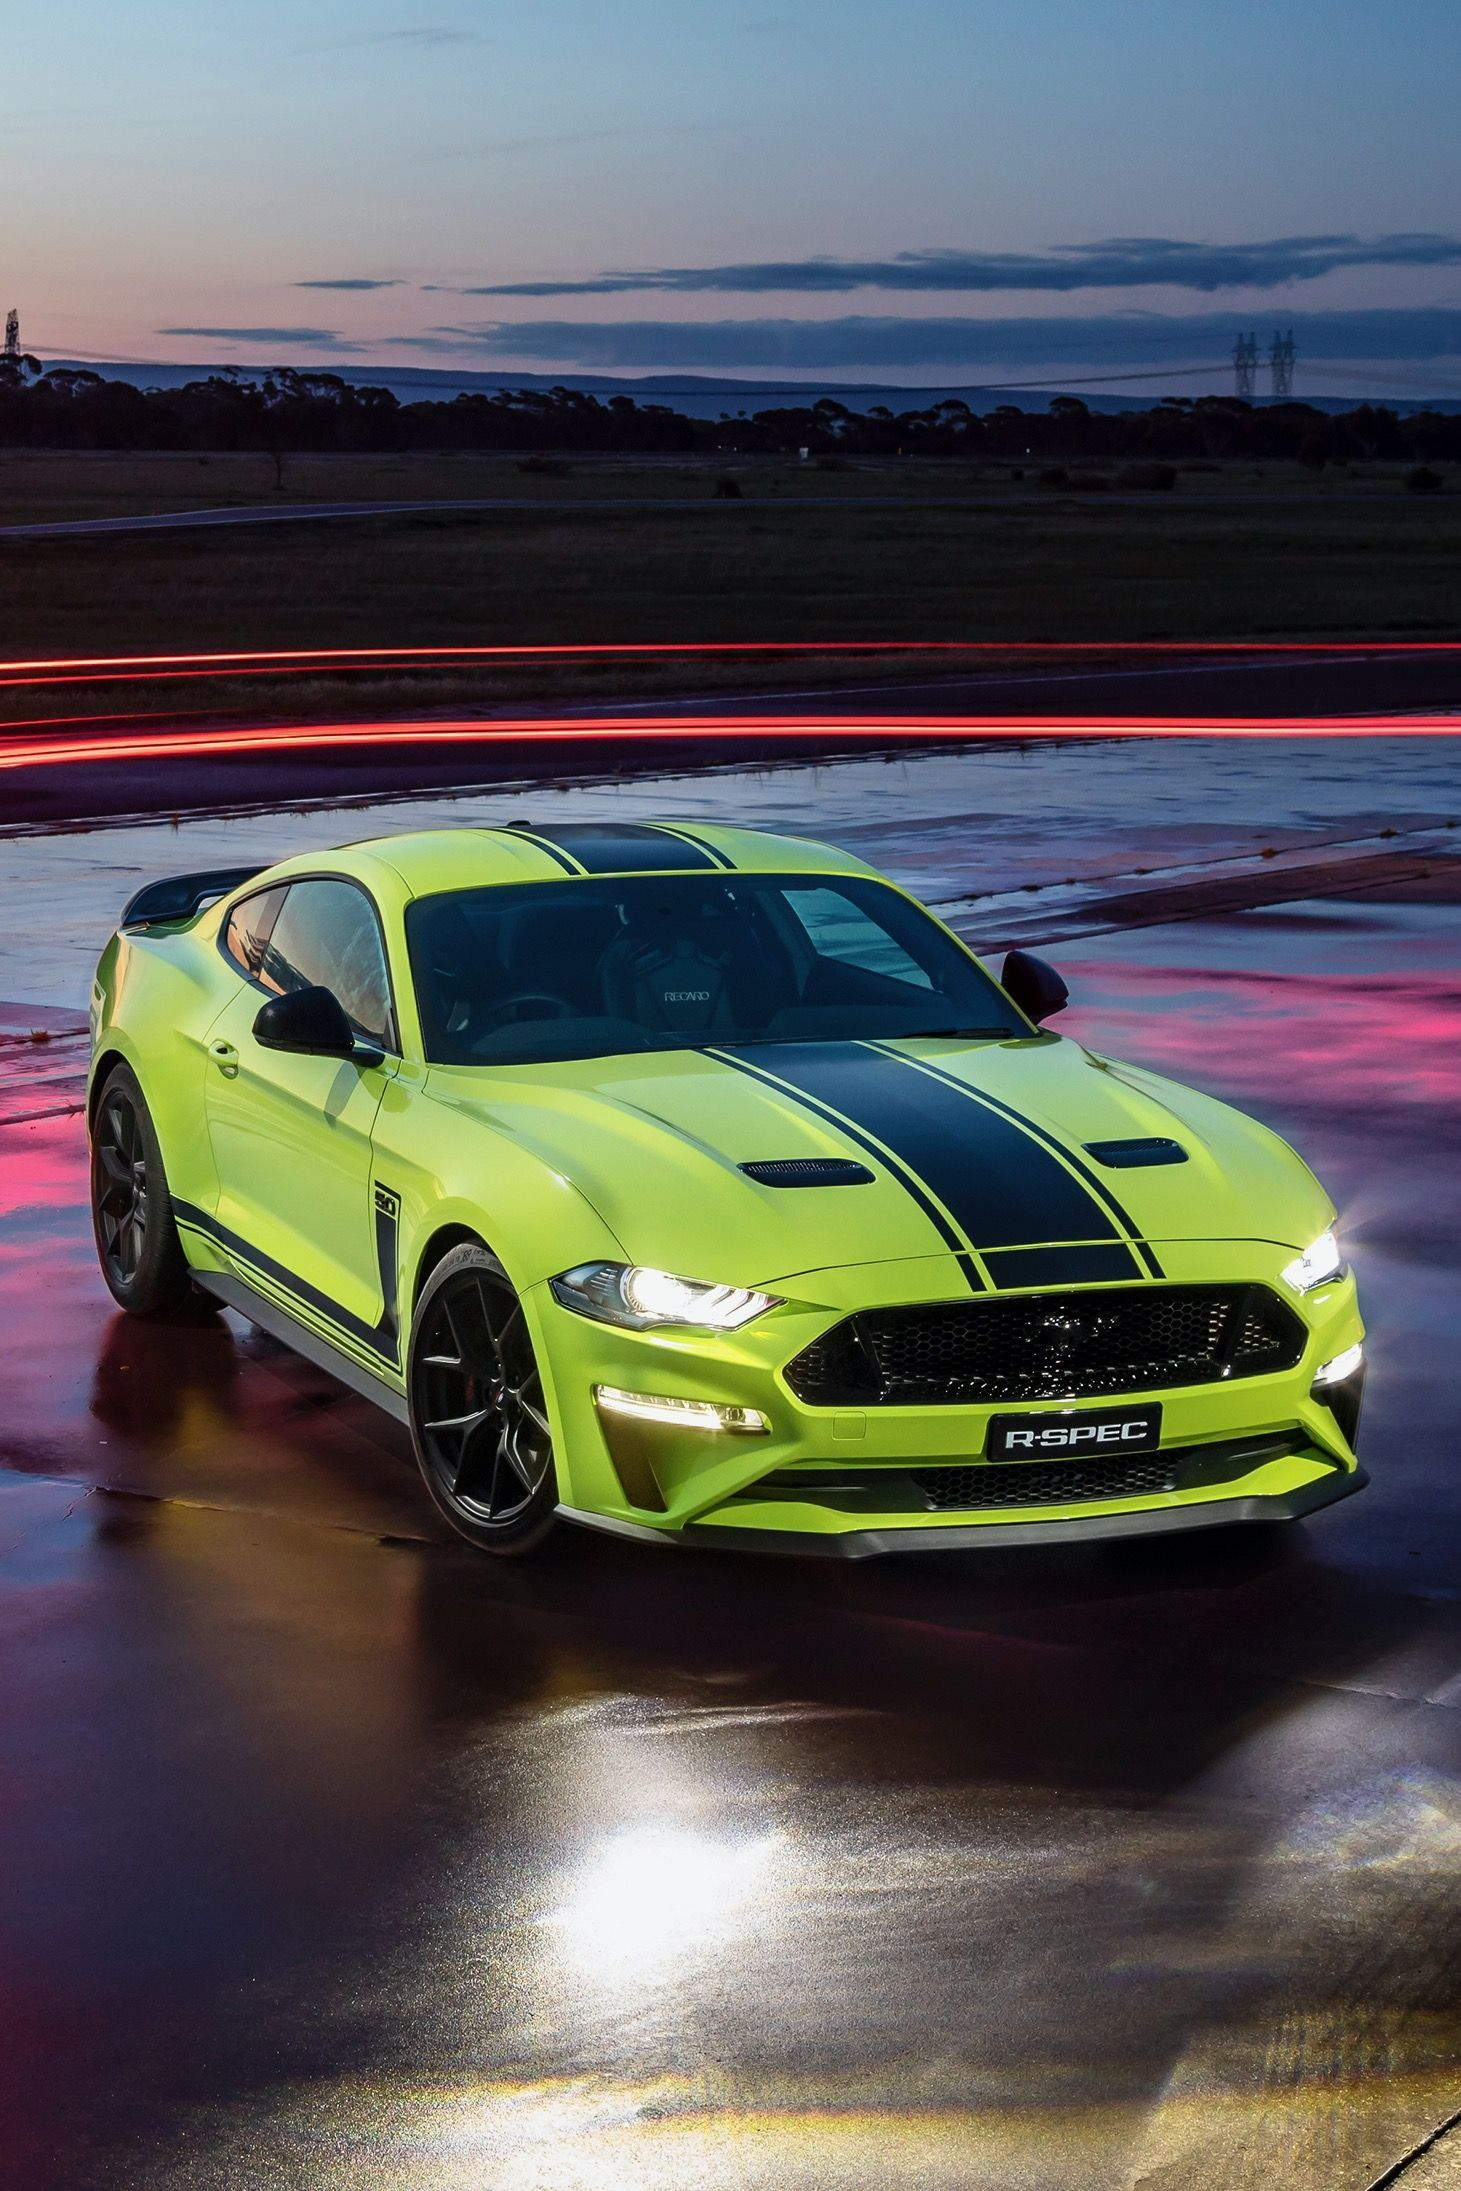 2020 Ford Mustang R Spec Australia Version Ford Mustang Gt